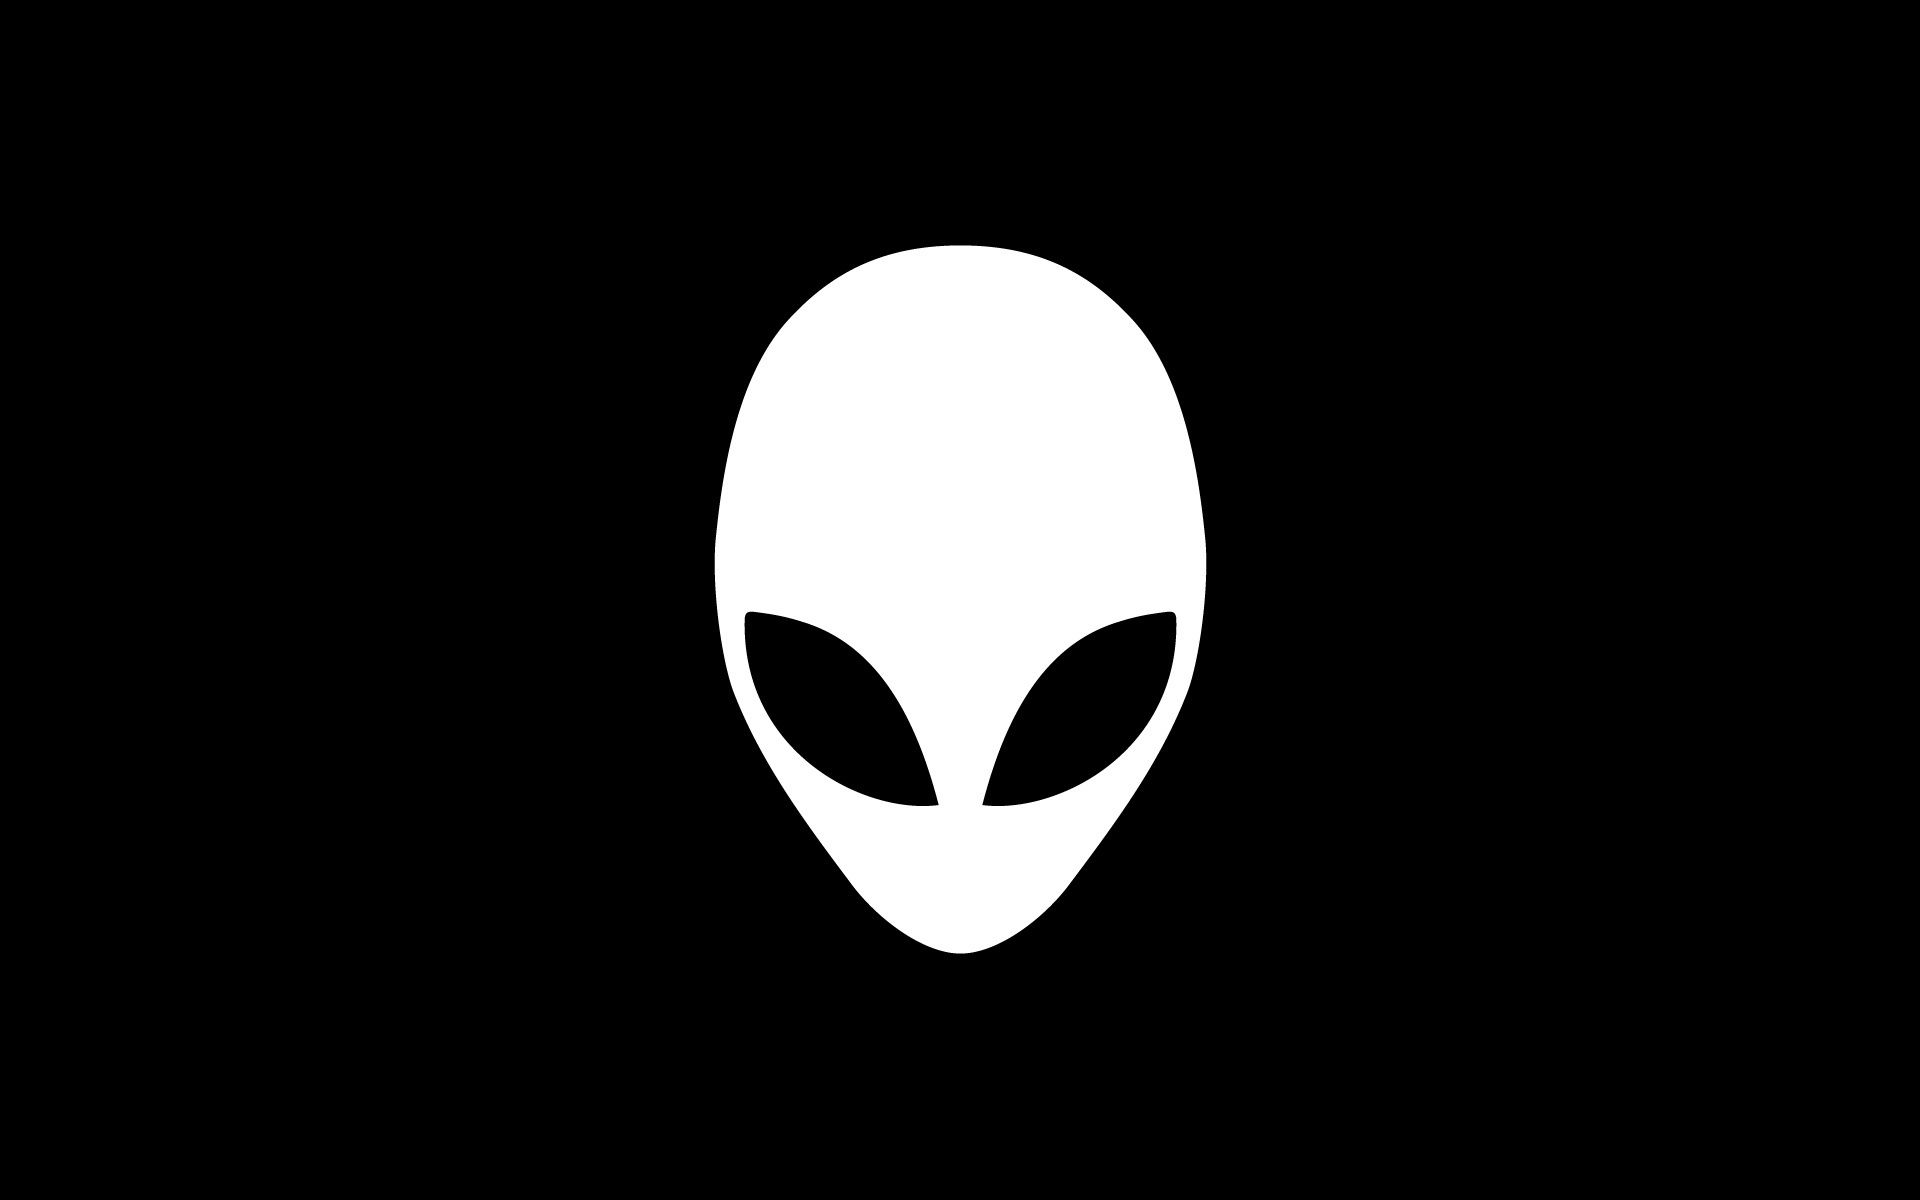 Alienware Wallpaper Alien Wallpapers In 2019 Trippy Iphone